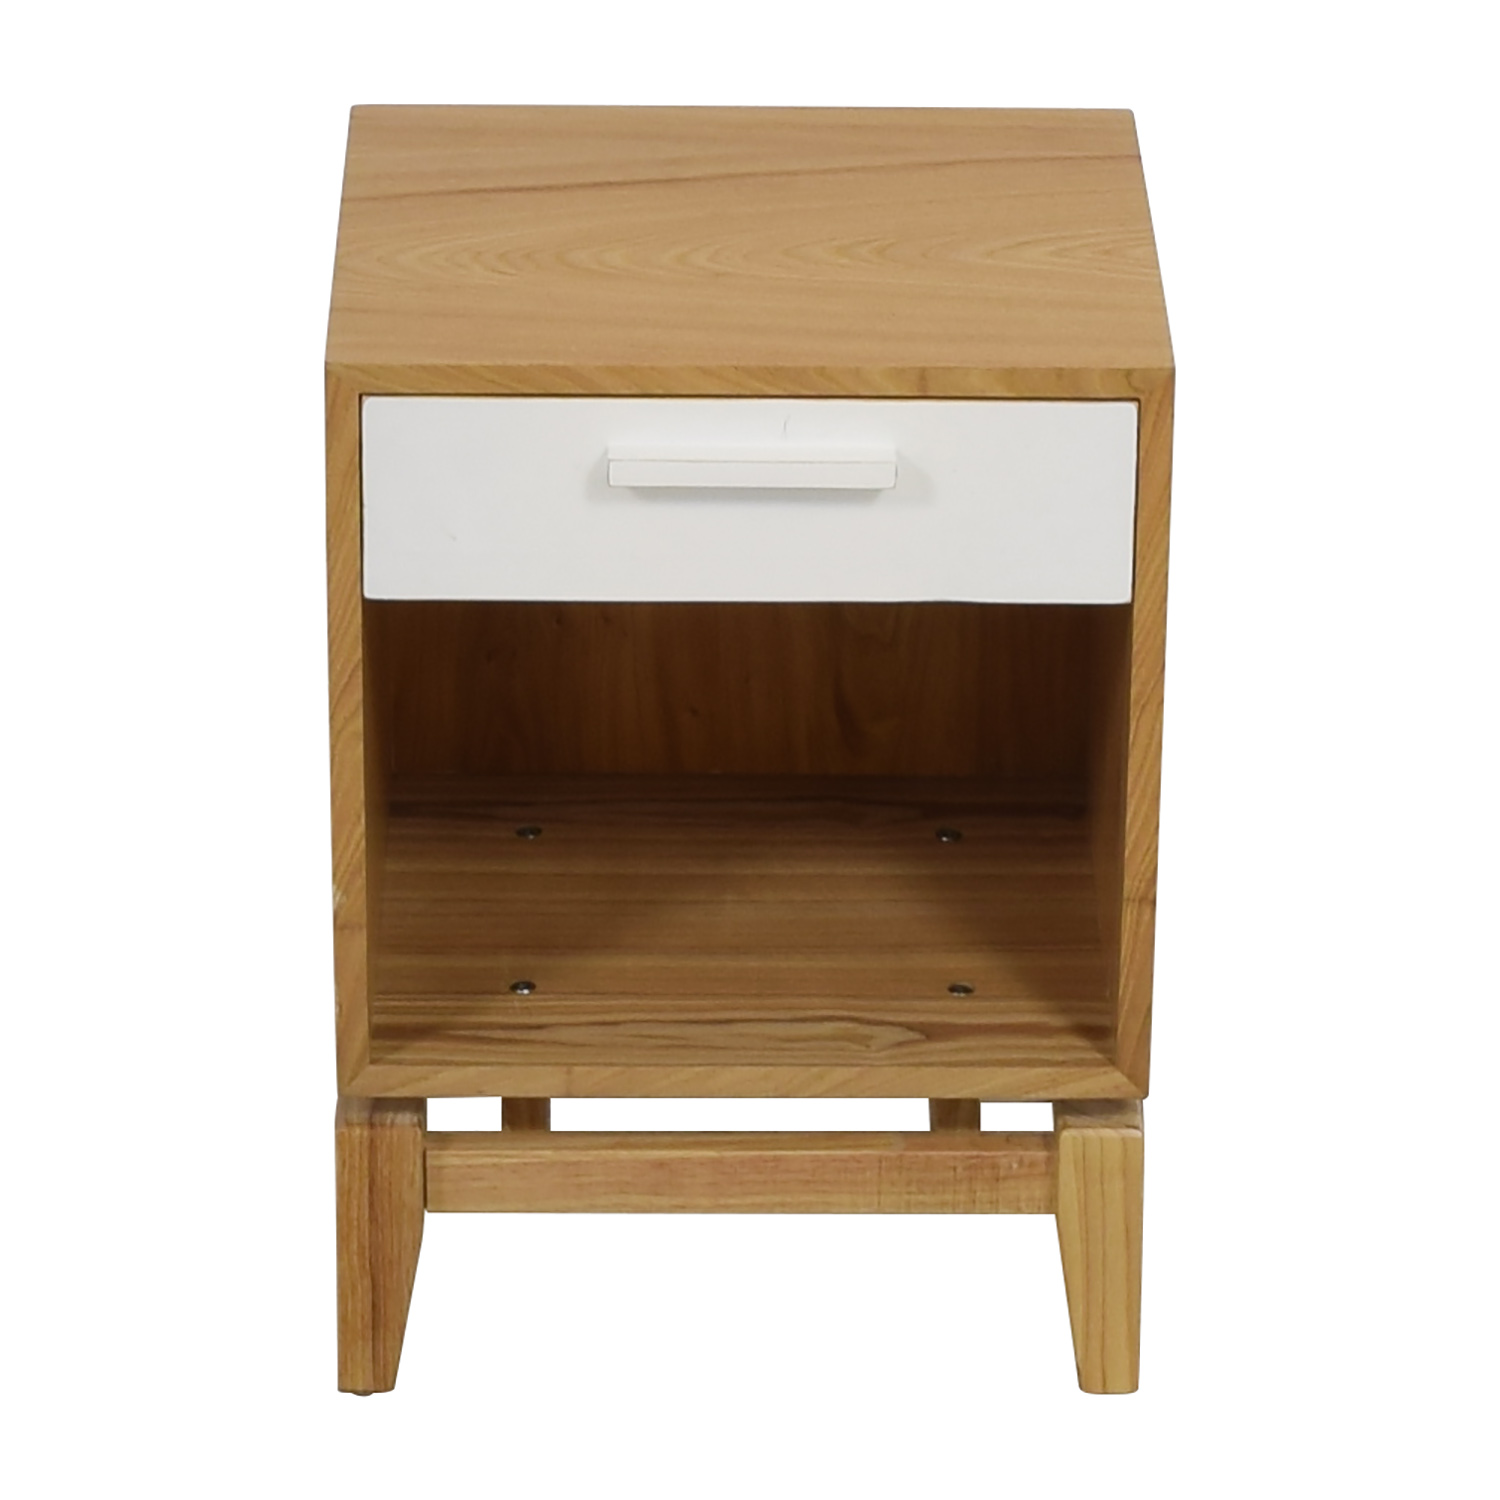 Joss & Main Natural and White Single Drawer End Table sale